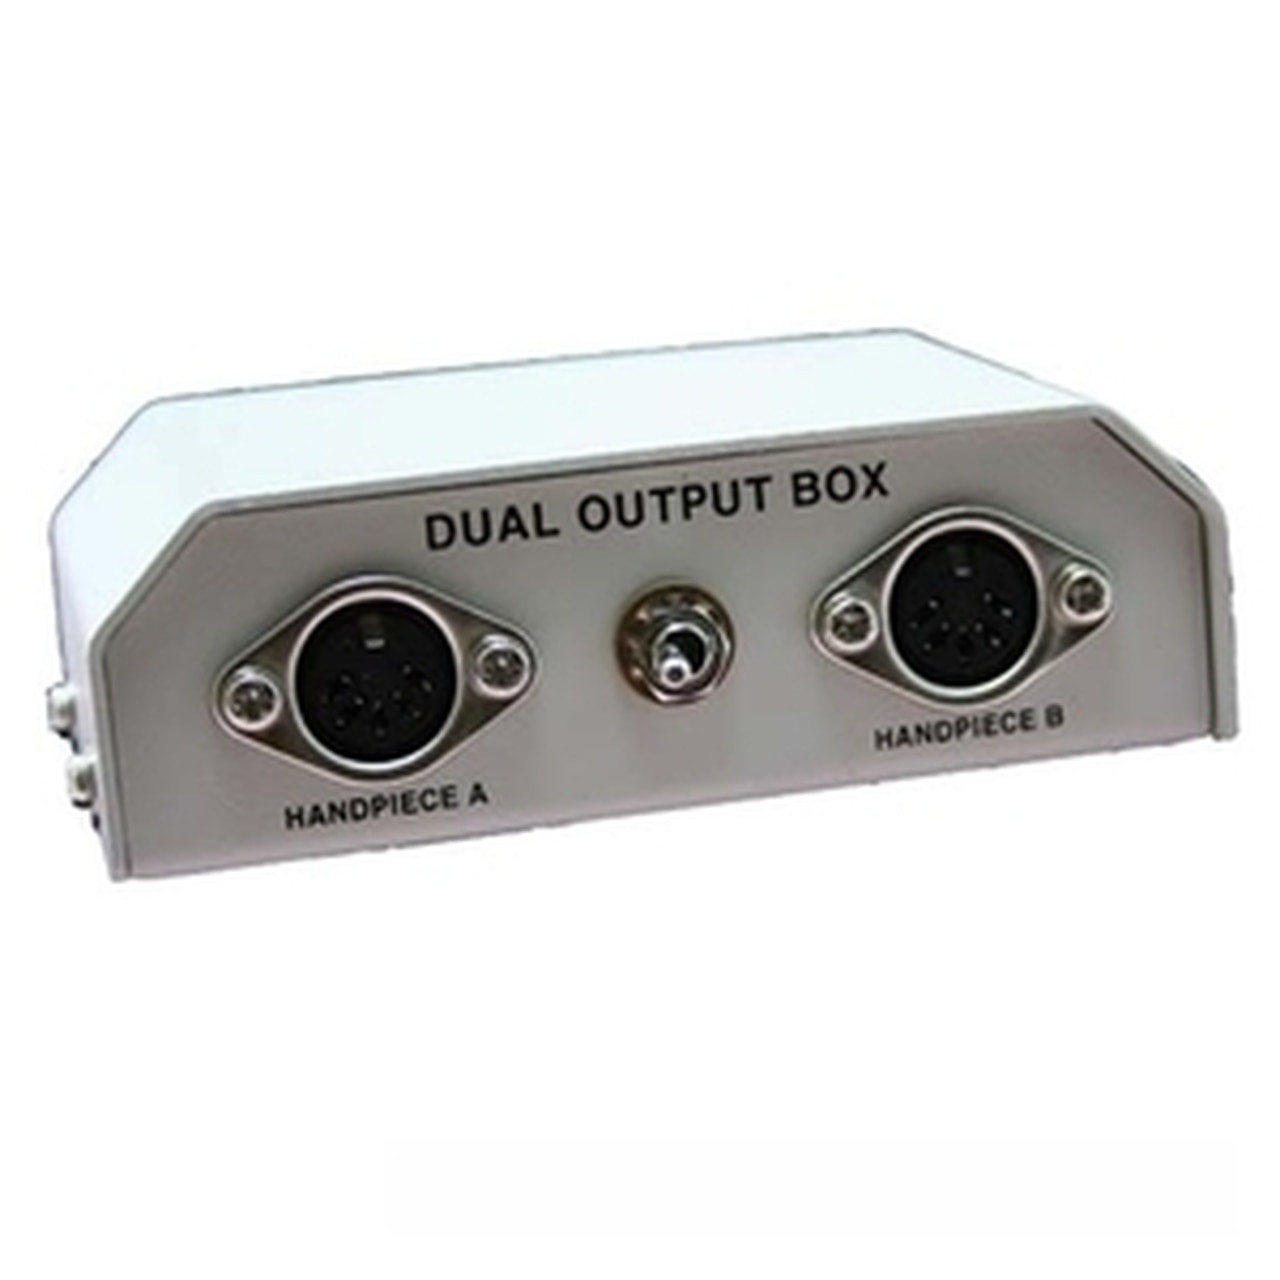 Front view of the Ram dual control box showing the two inputs and switch to flip from one unit to the other.